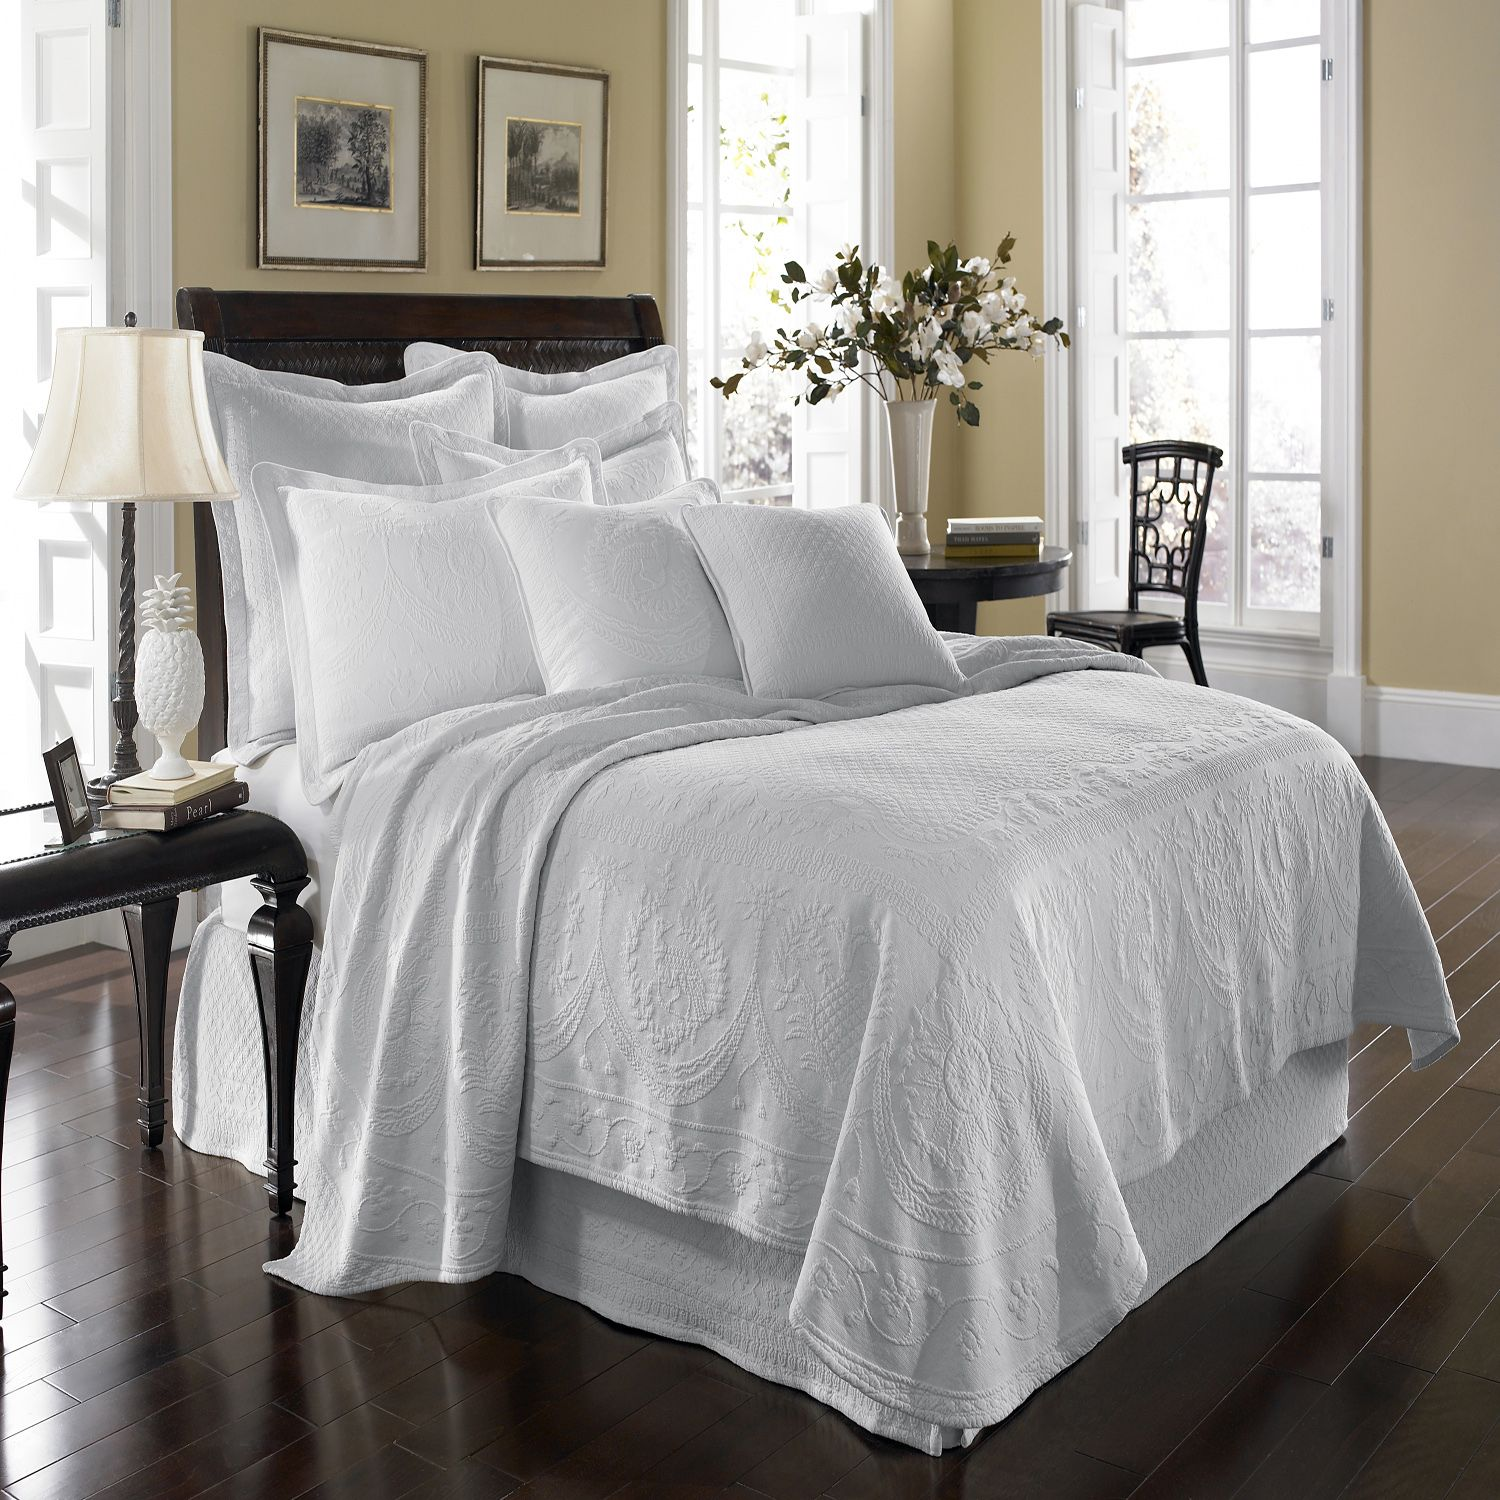 Perfect Matelasse is ridiculously luxurious and matches everything King Charles Matelasse Coverlet from Sears